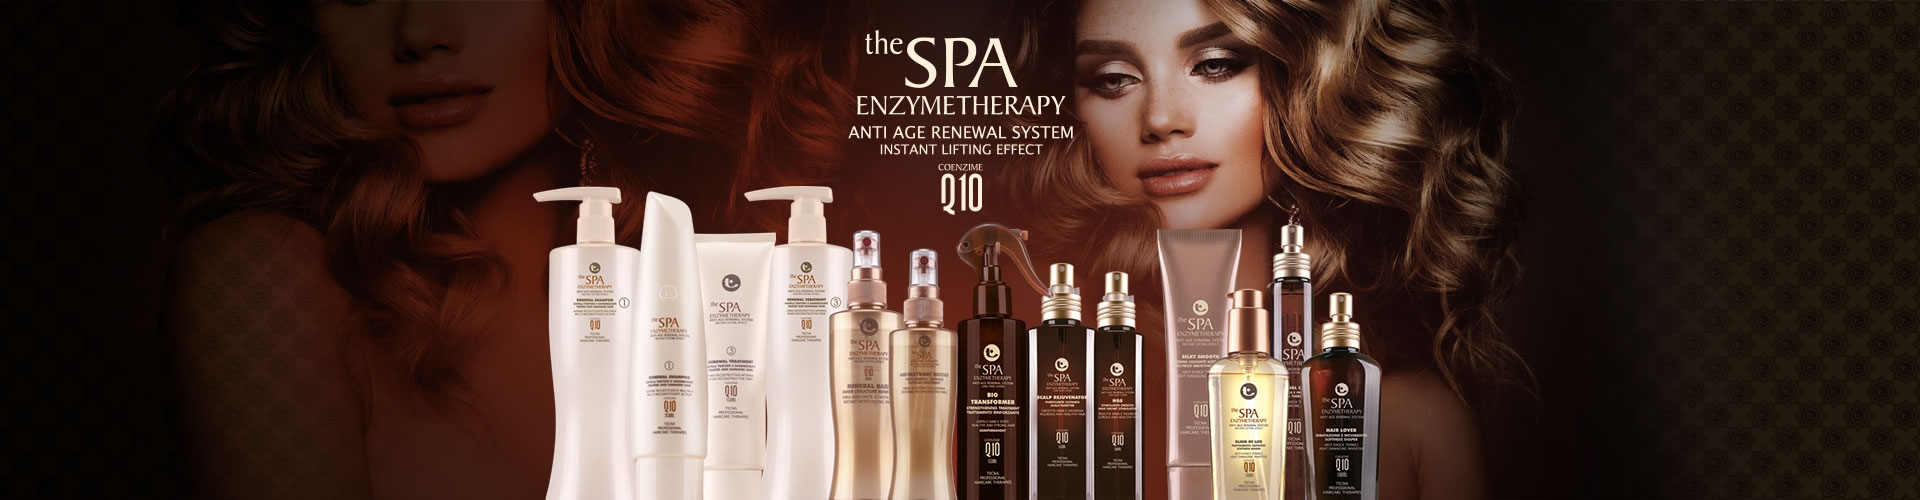 SPA Enzymetherapy